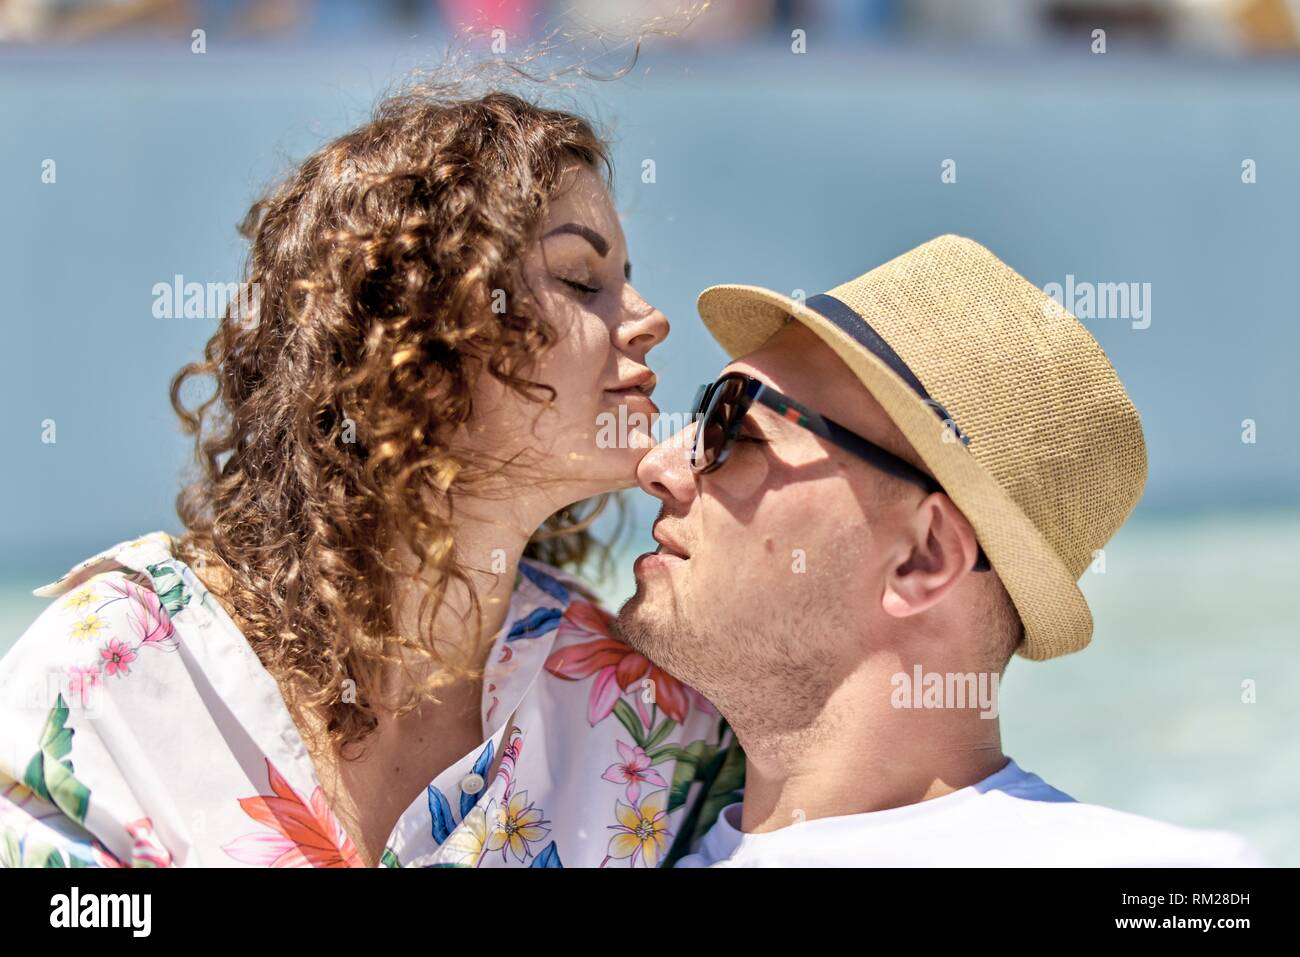 lovers, holiday, summer, flirting, affair, summer fling - Stock Image